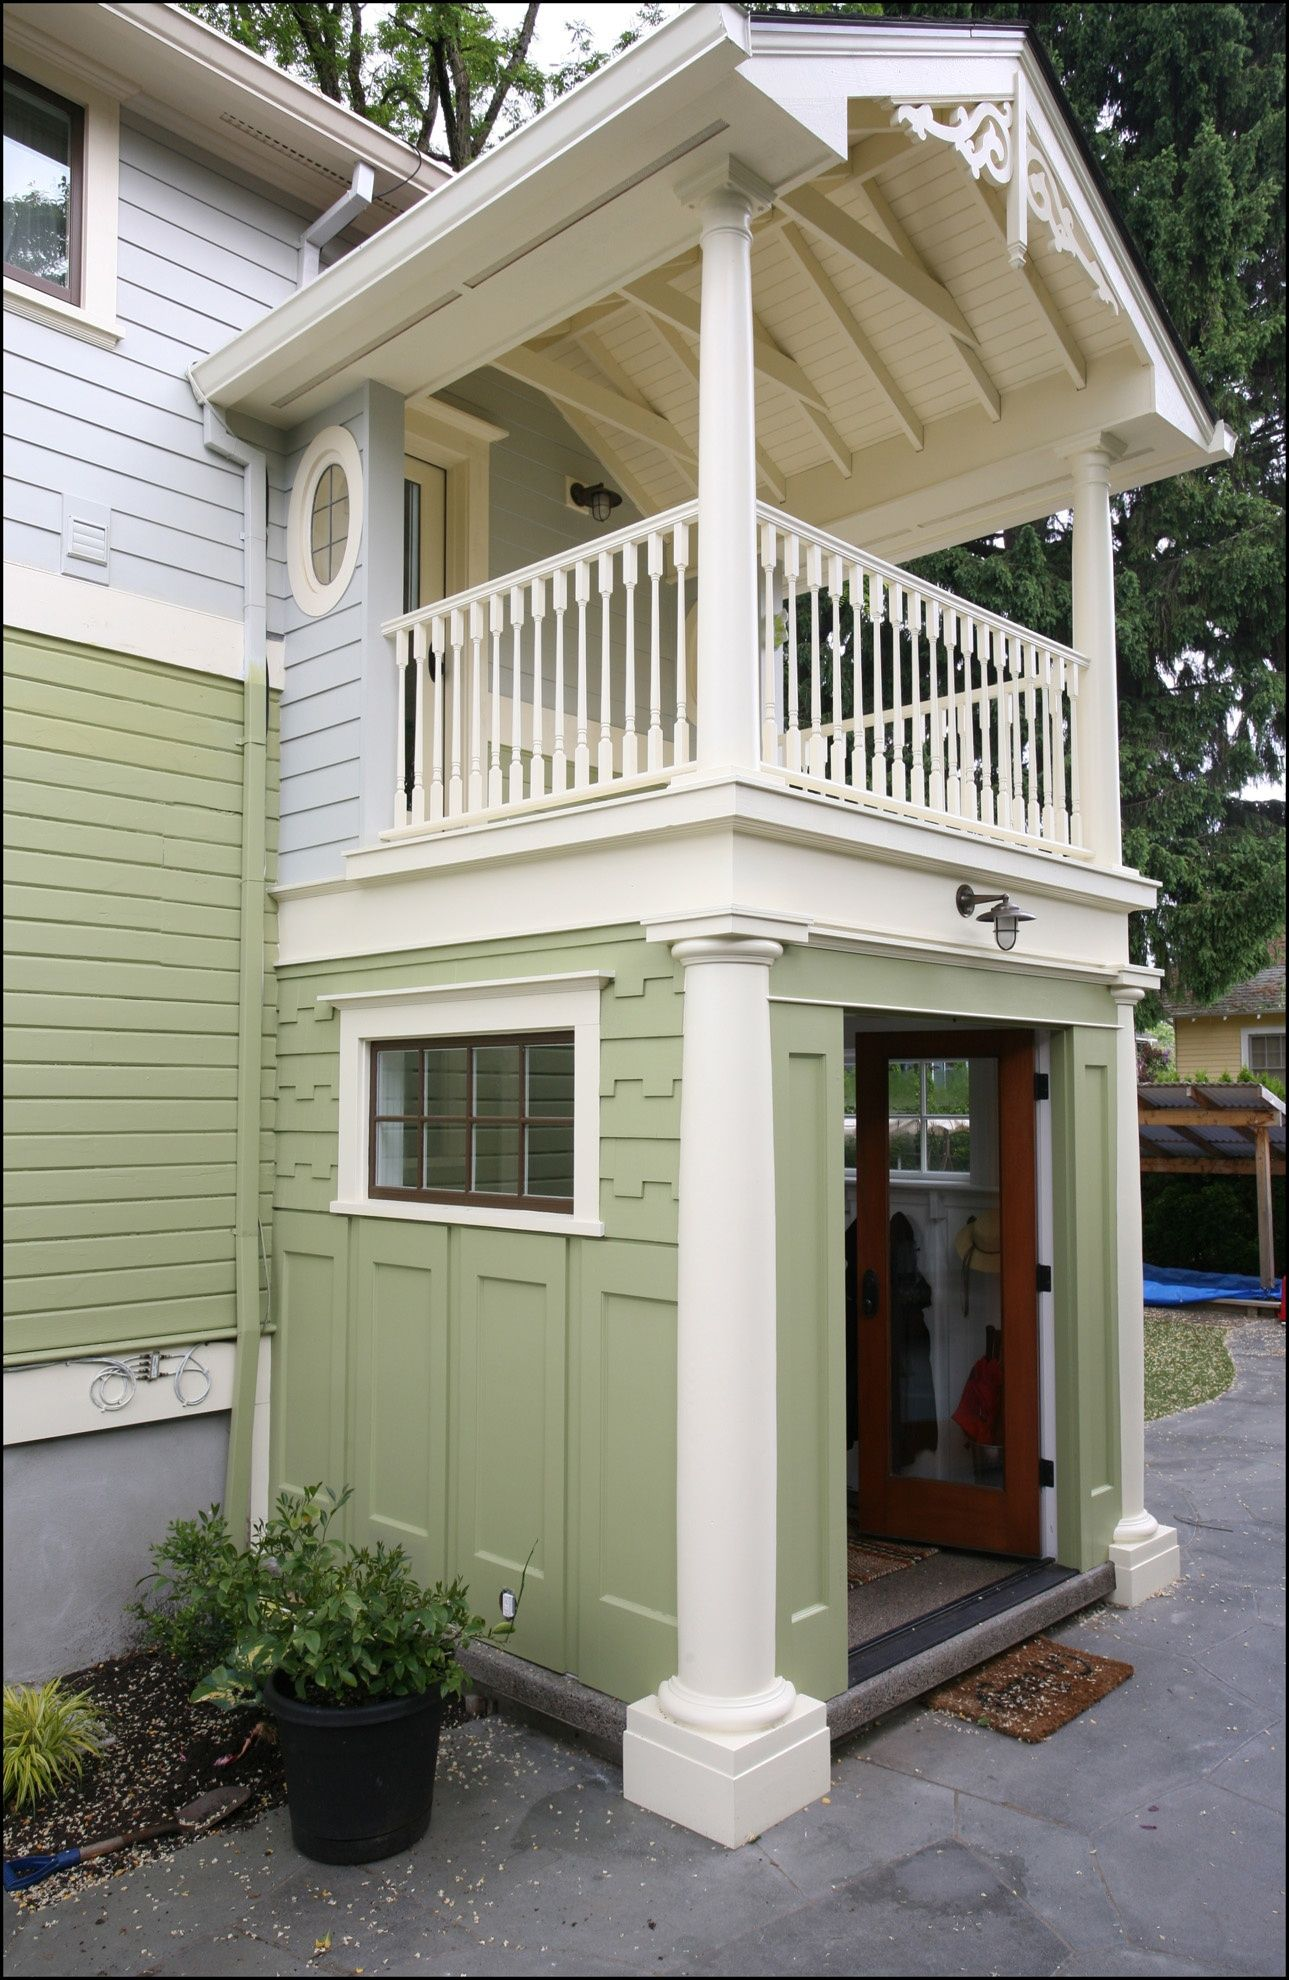 Mudroom Addition To Front Of House - Yahoo Search Results